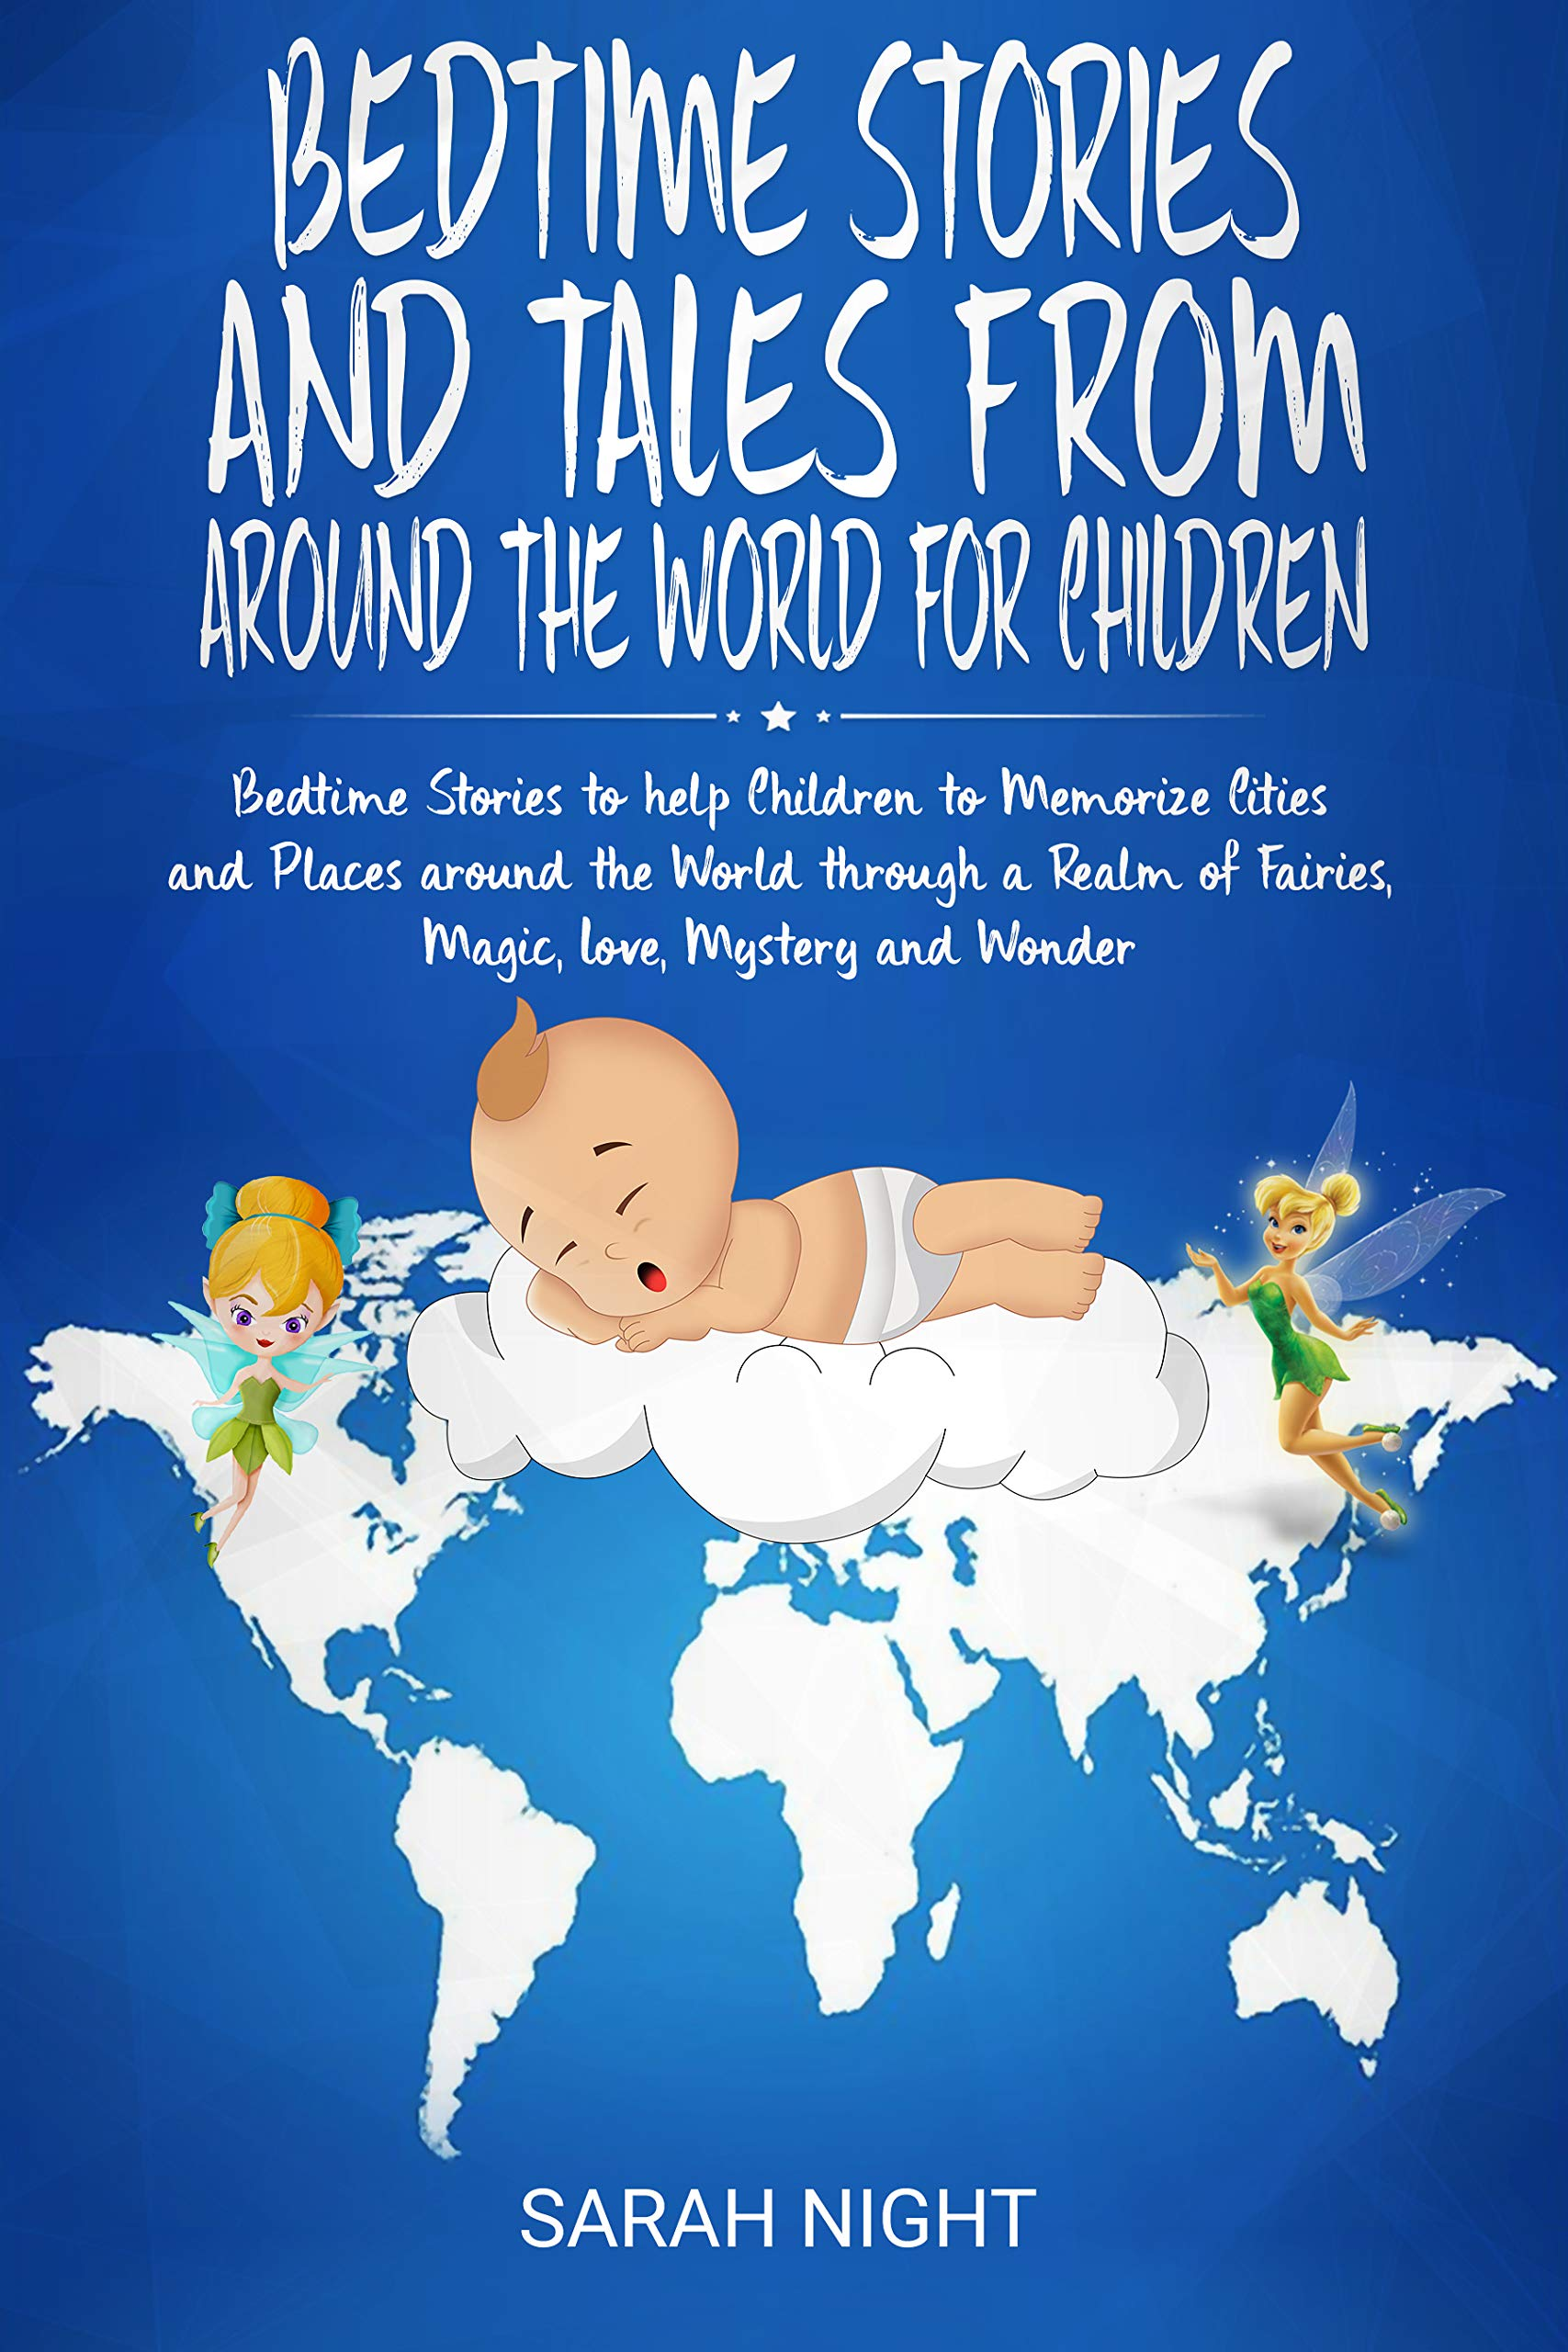 Bedtime Stories and Tales from around the World for Children: Bedtime Stories to help Children to Memorize Cities and Places around the World through a Realm of Fairies, Magic, Love, Mystery & Wonder